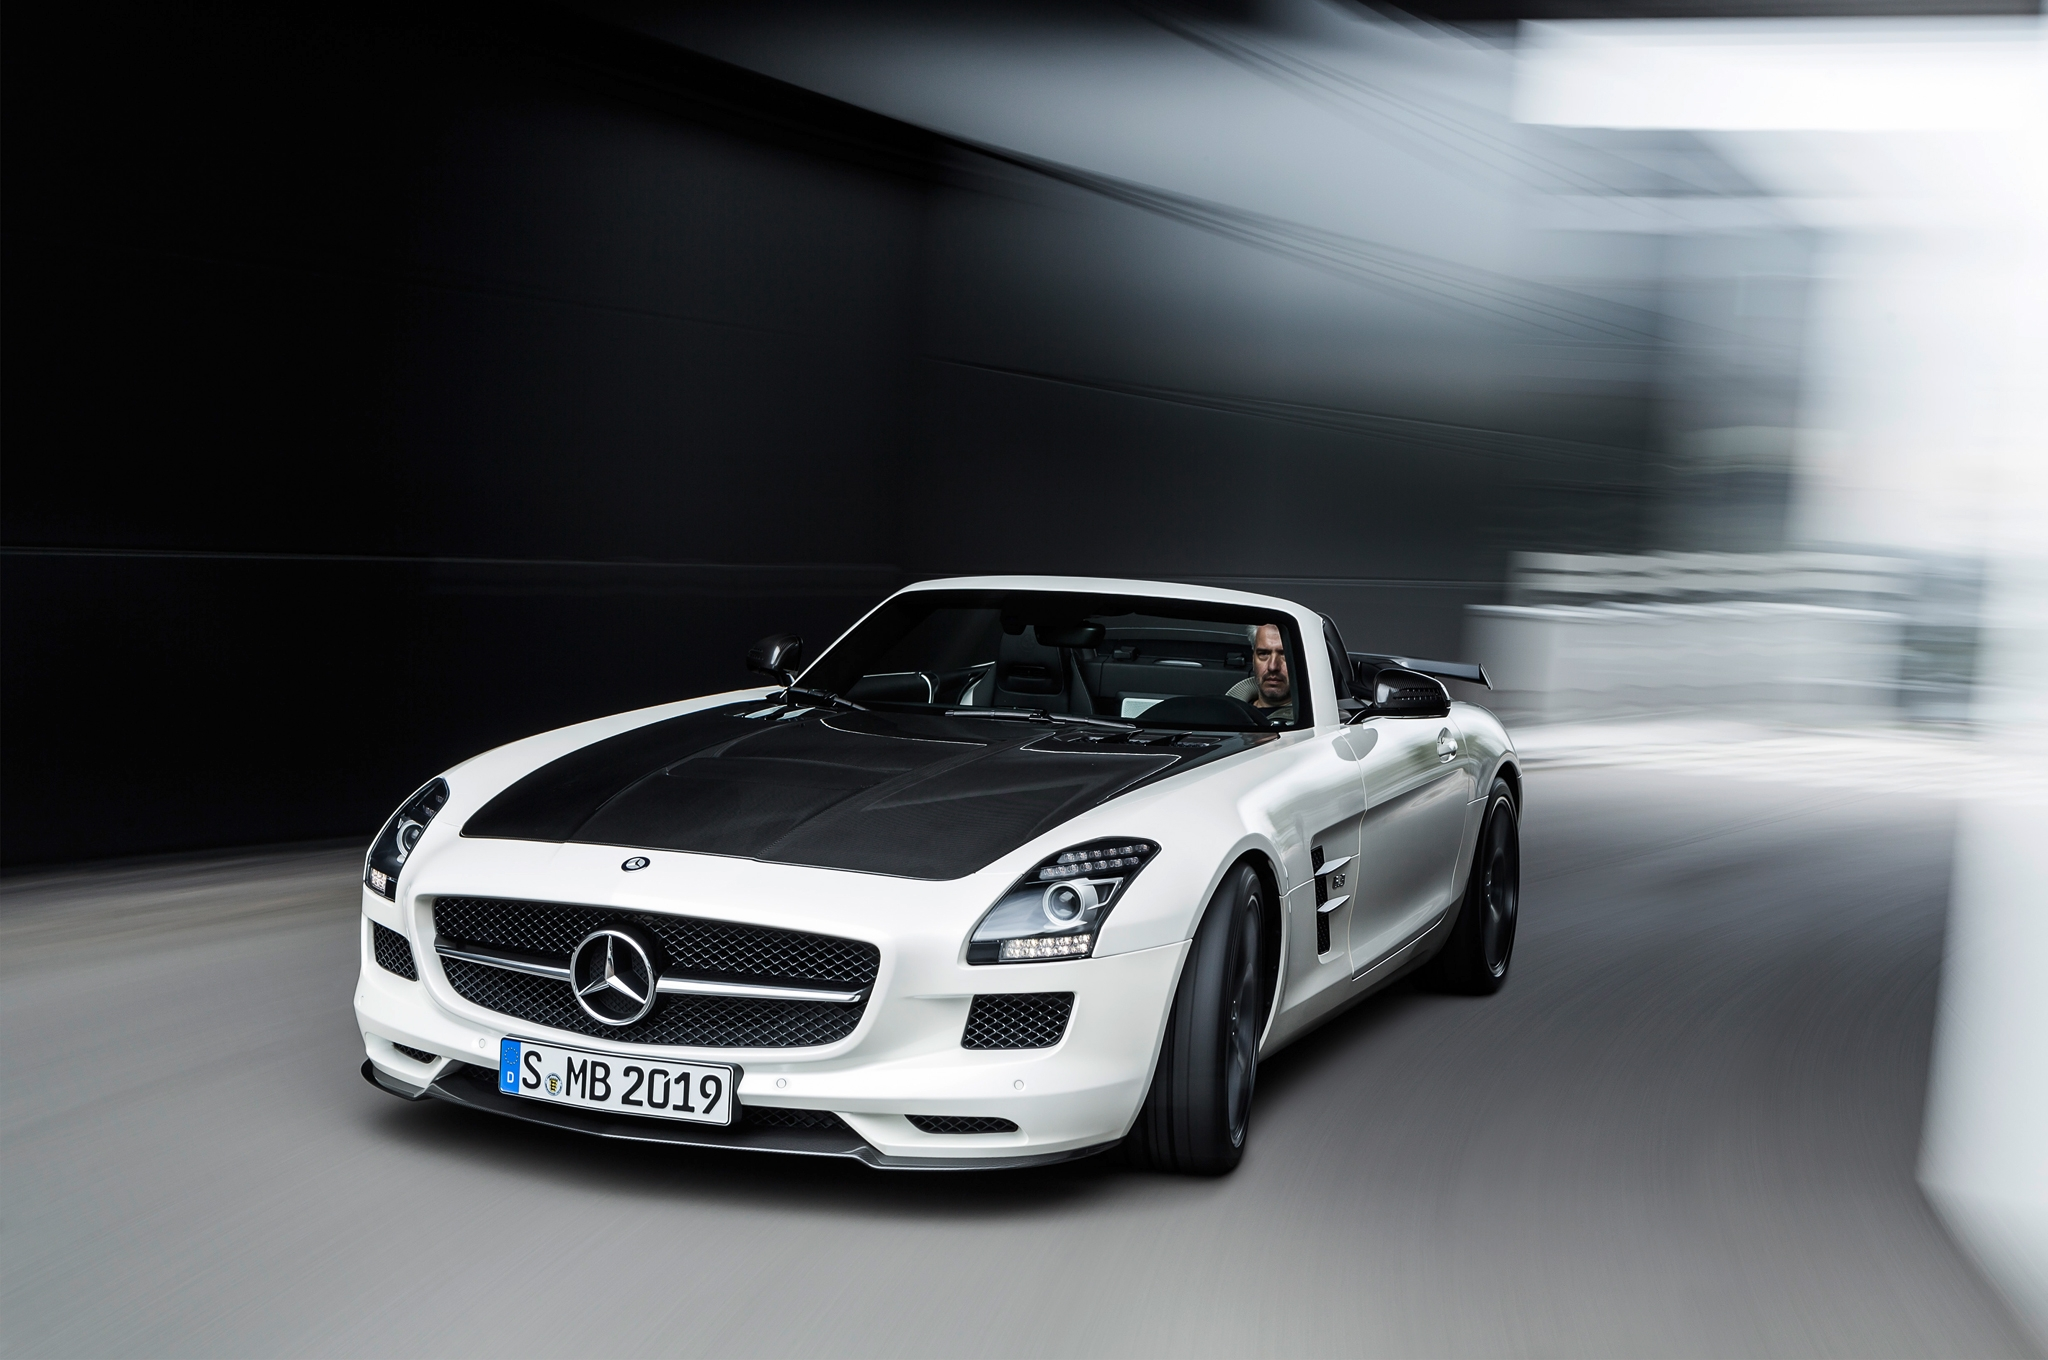 2015 Mercedes-Benz Sls Amg Gt Final Edition #11